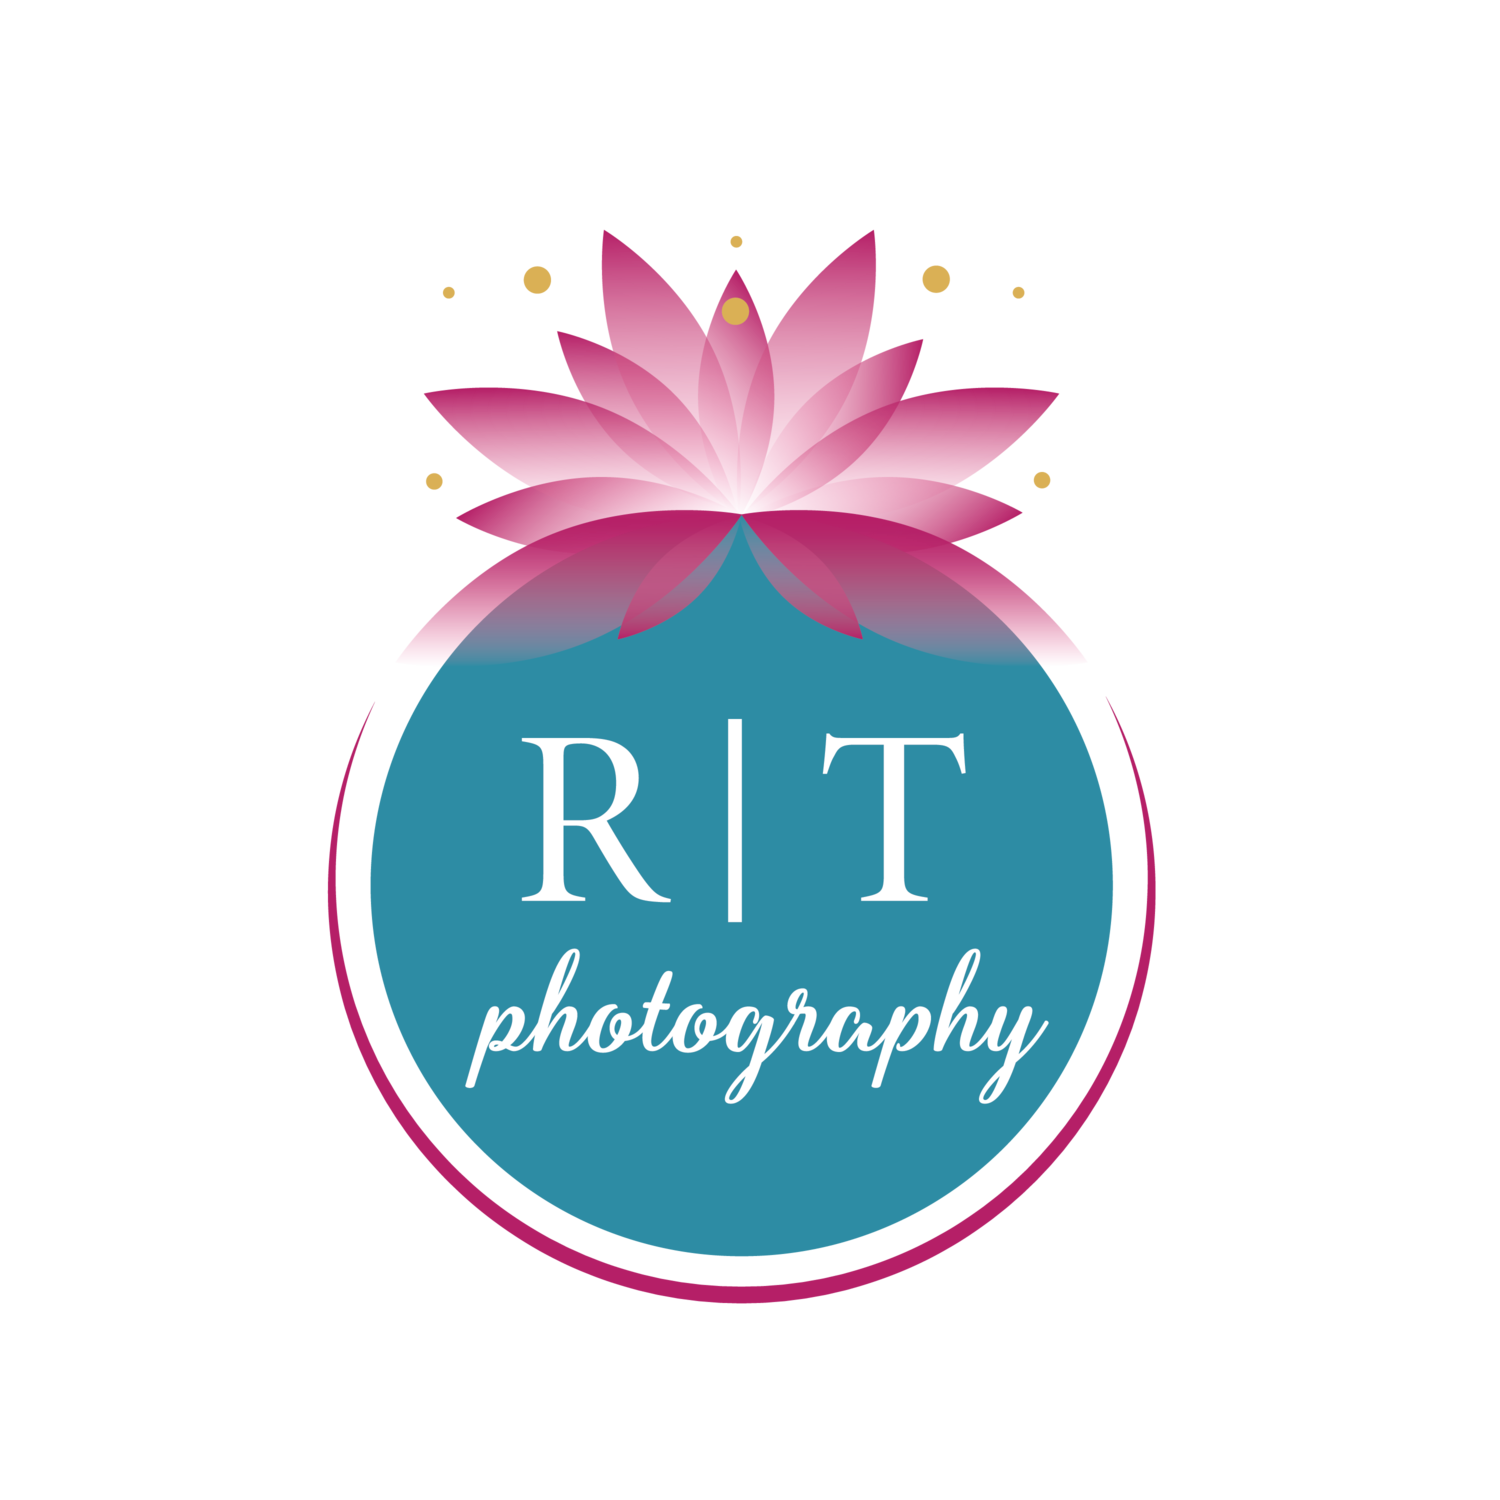 RIT photography